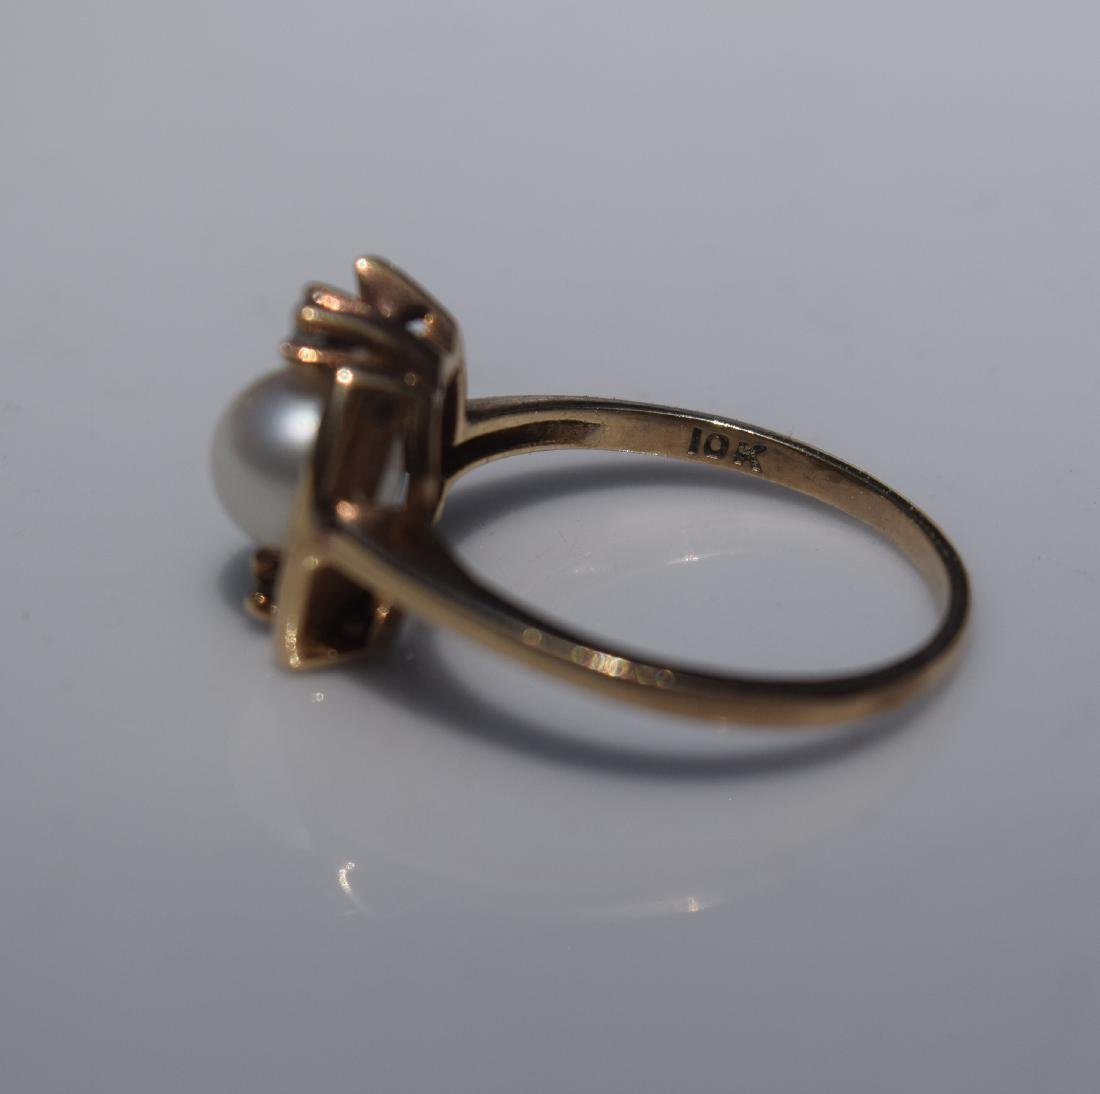 Antique 10K Gold Pearl Diamond Ring, Marked 10K - 3